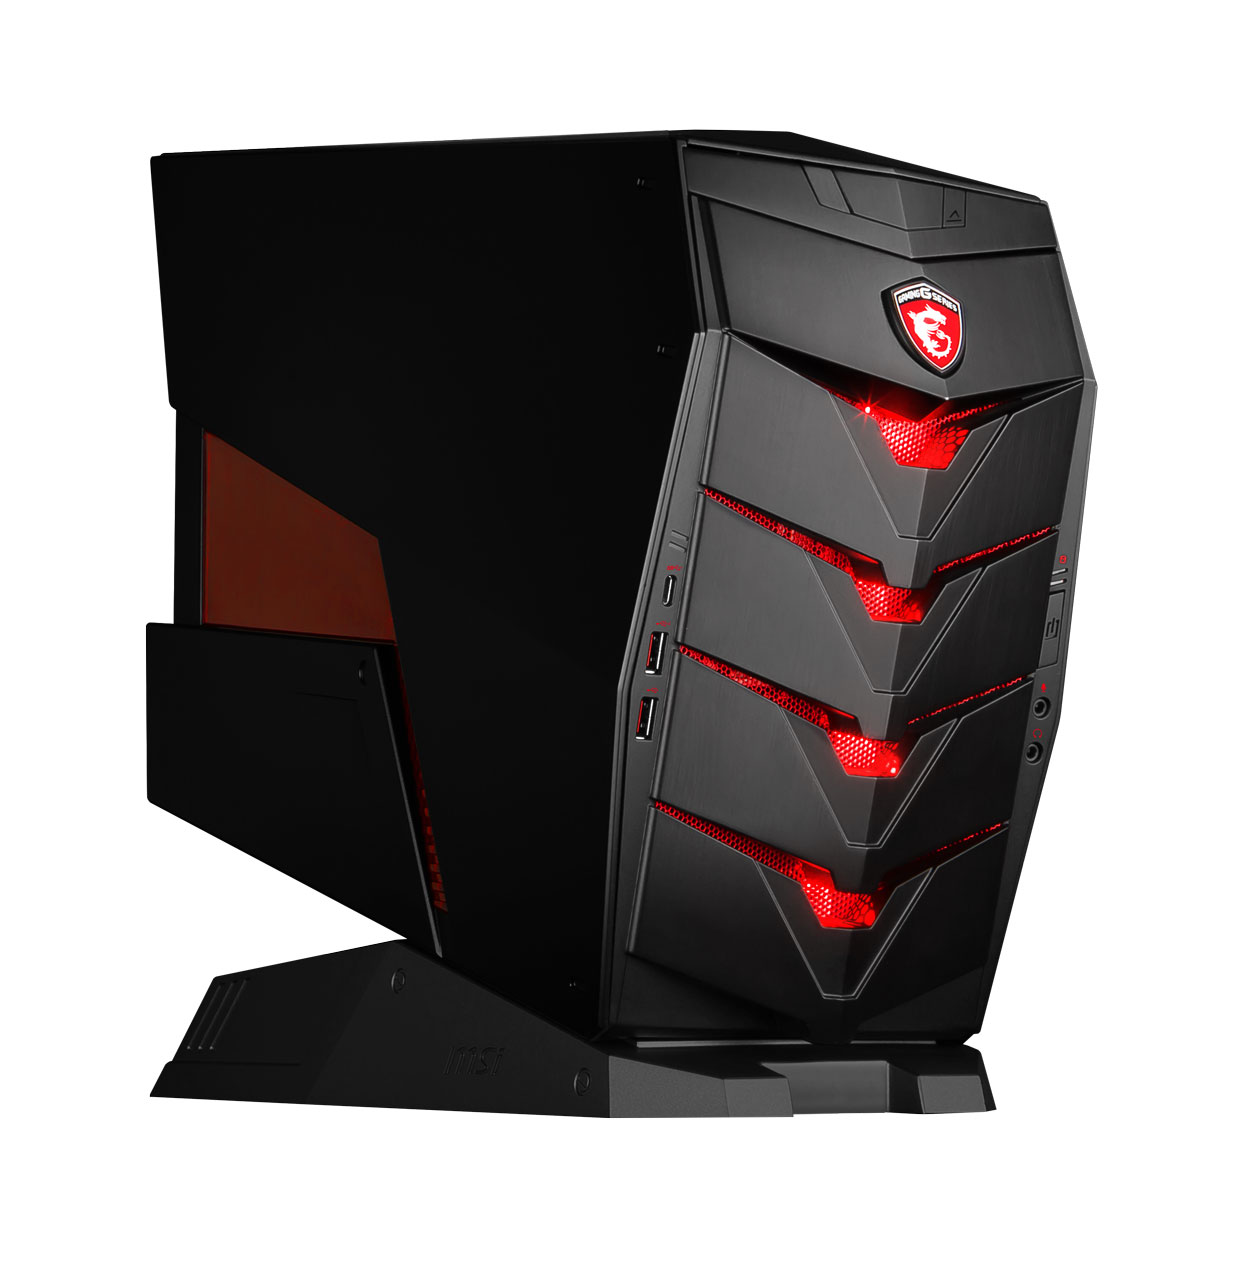 Aegis Msi D 233 Voile Son Pc Gaming Inclin 233 Ginjfo